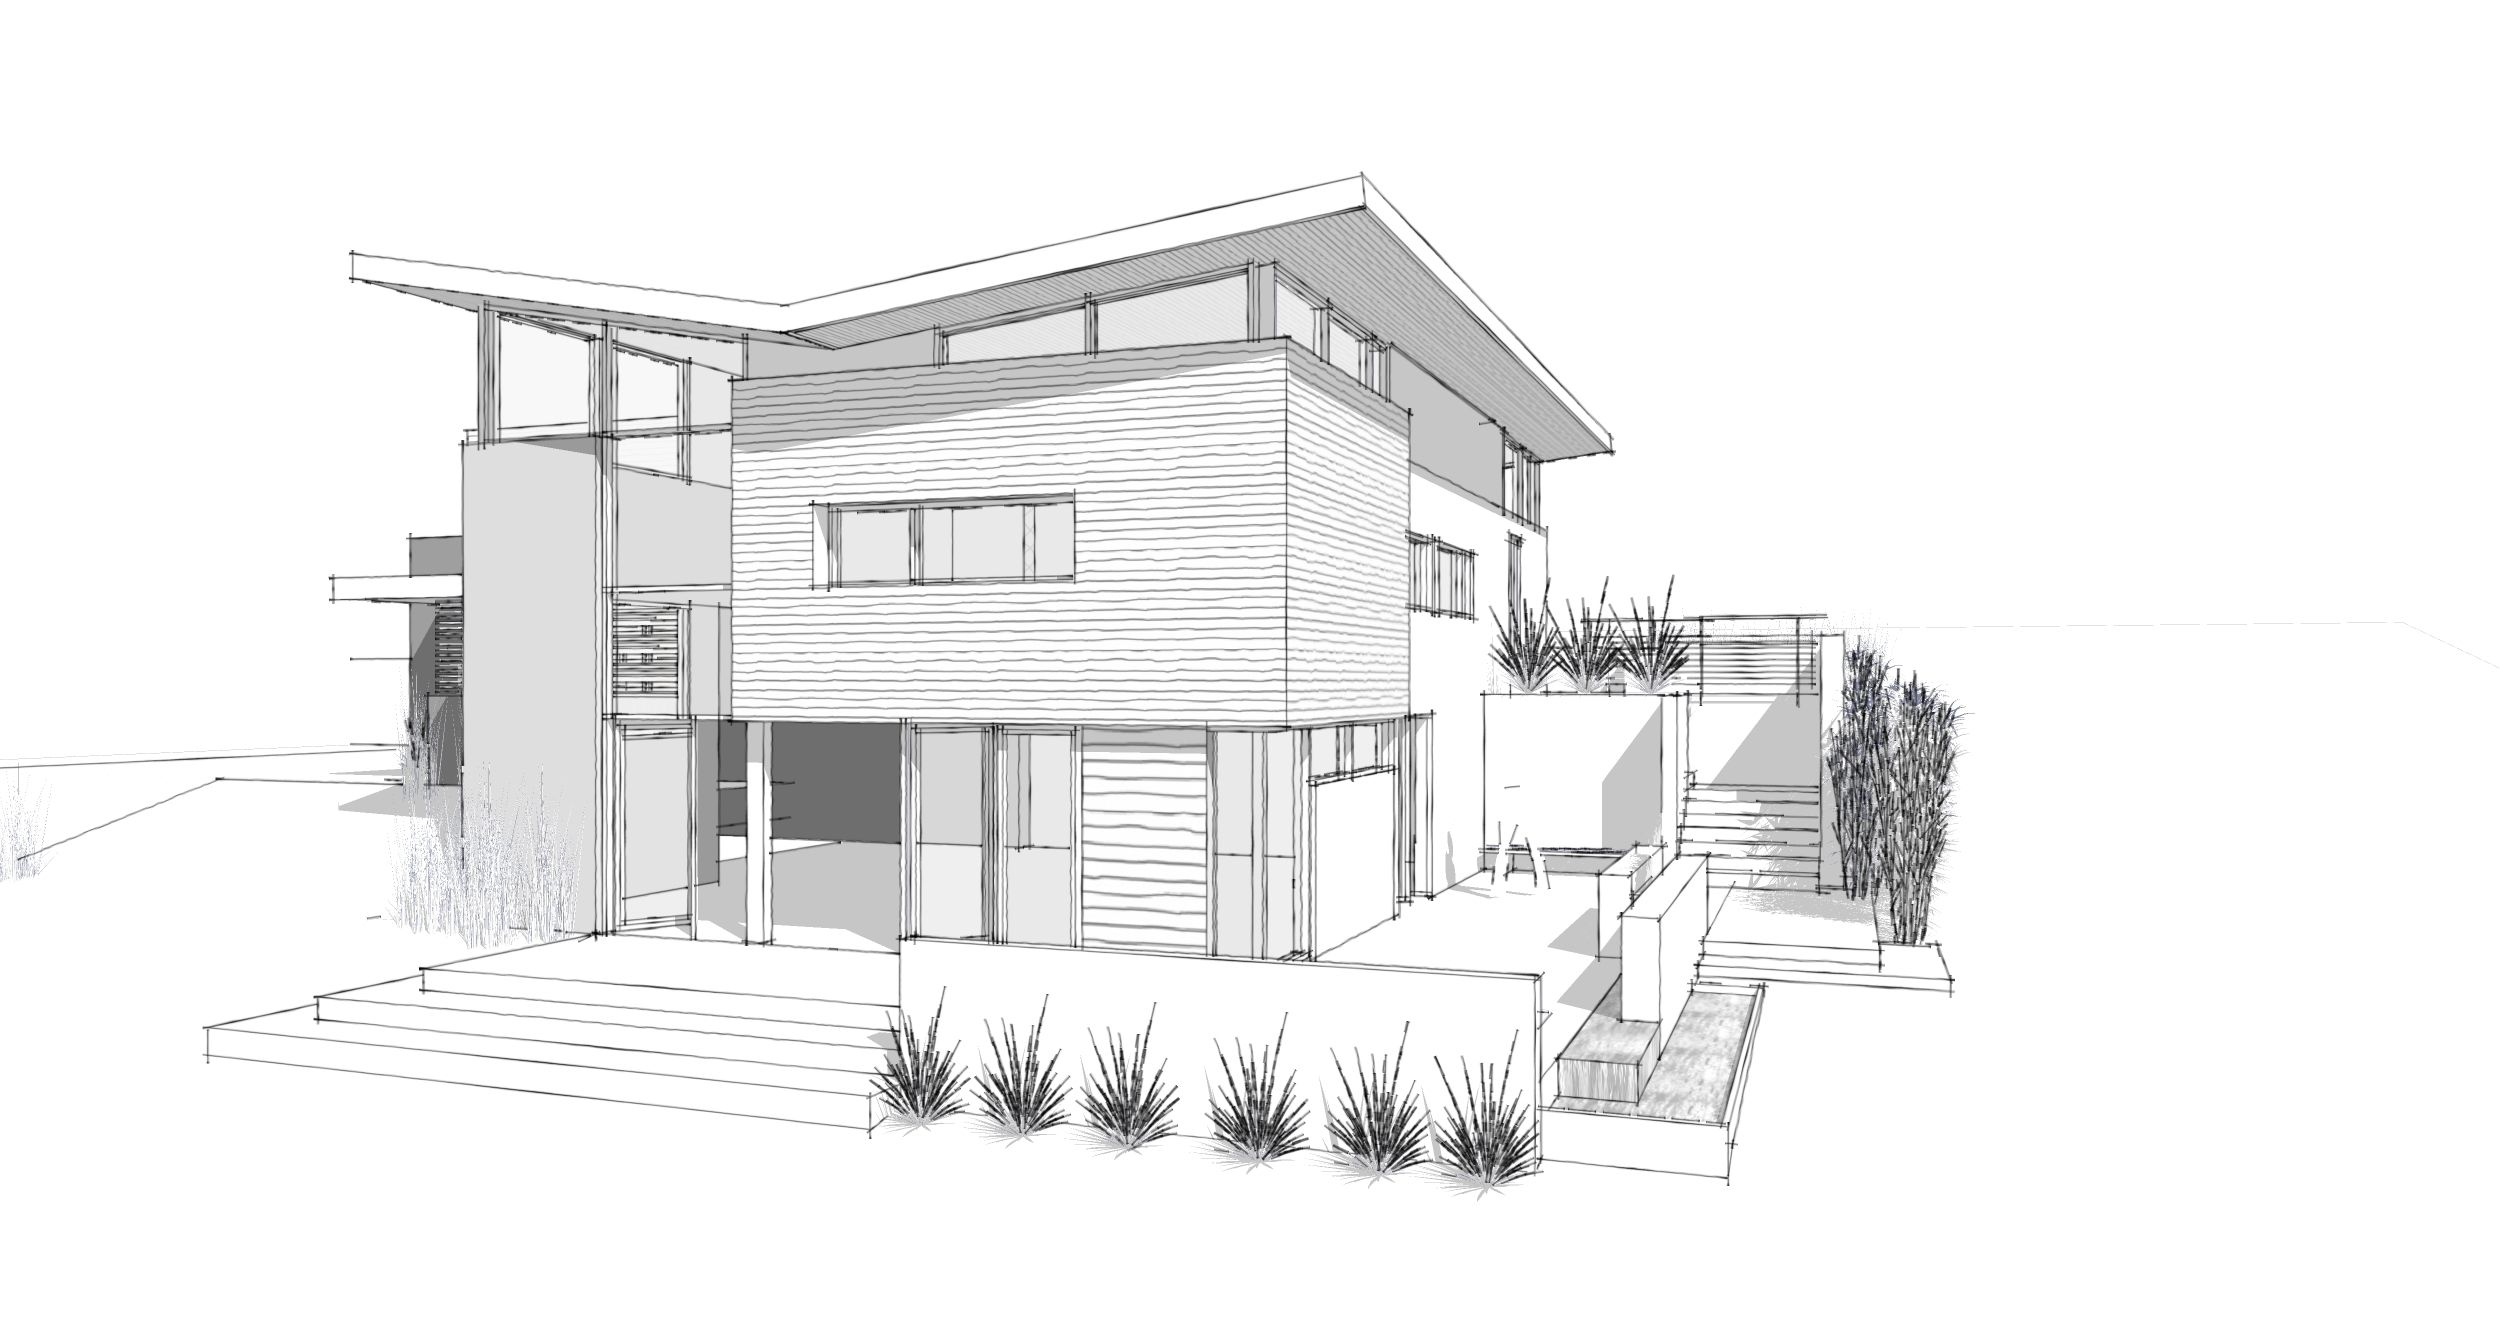 Modern home architecture sketches design ideas 13435 for Architectural design plans